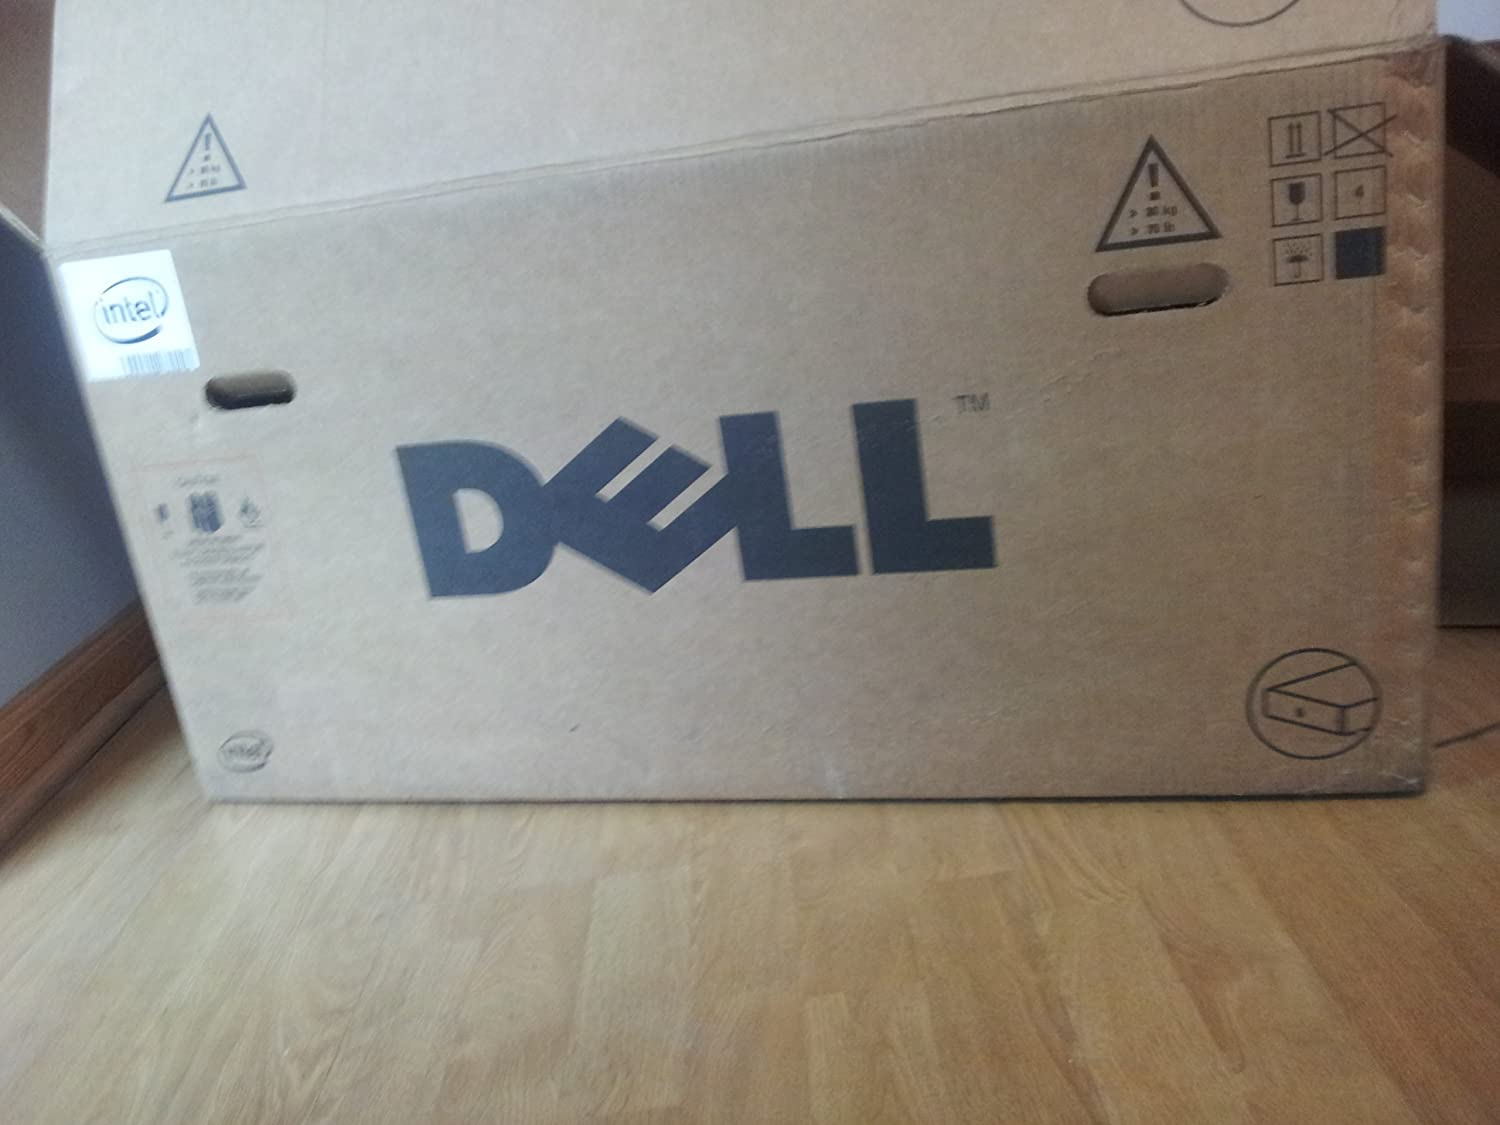 Электроника Dell T410, 1xIntel E5520, 6GB RAM, 2x500GB SATA 7.2K RPM Hot Pluggable Enterprise Hard Drives, DVD+RW, Non-Redundant PSU, No OS, Dell 3 Year Basic Hardware Warranty